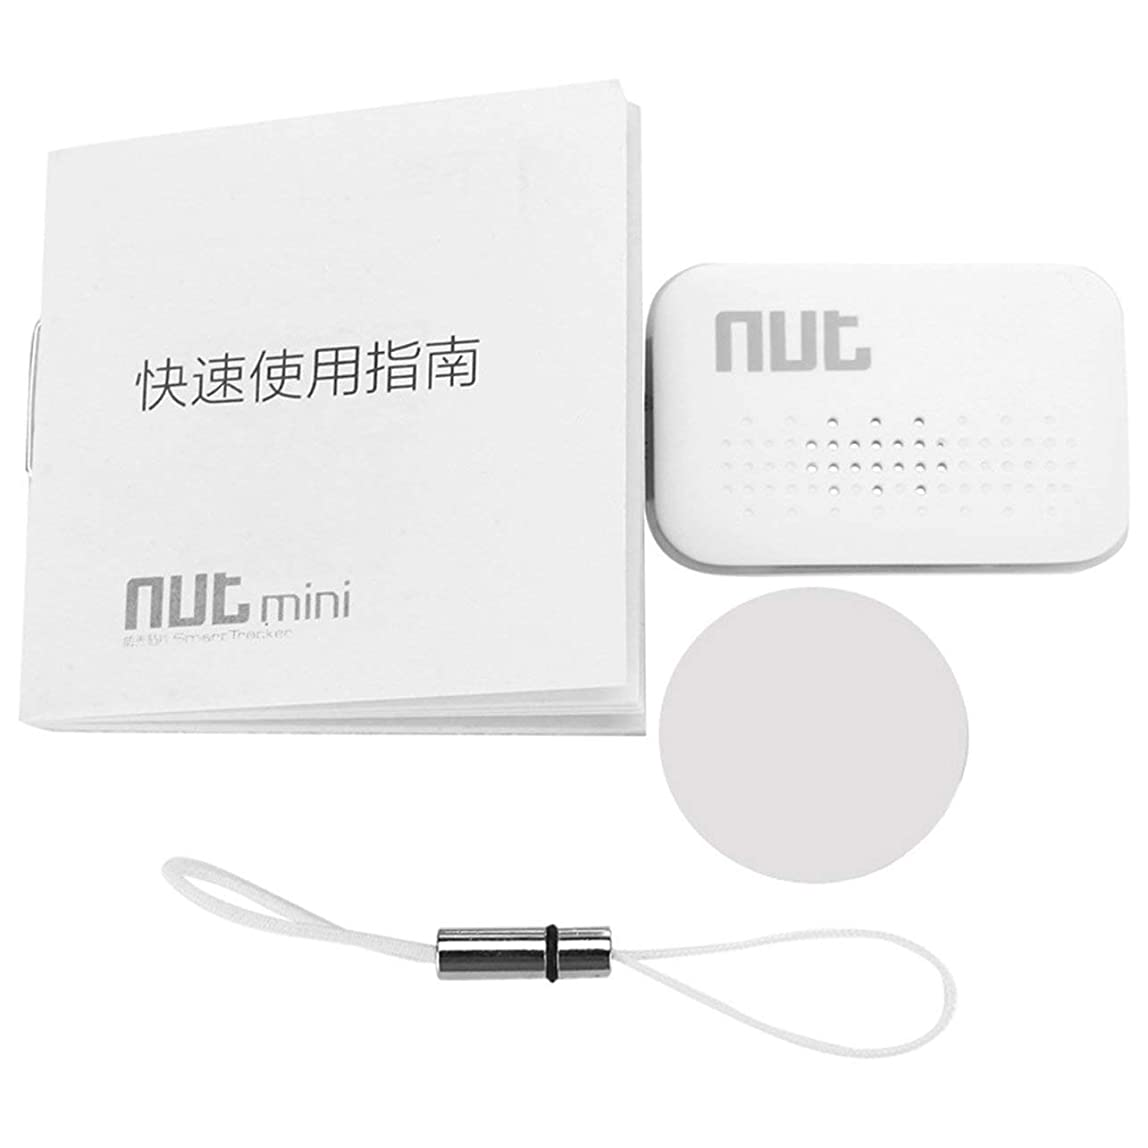 for NUT Mini F6 Smart Tag Tile Tracker Key Finder Locator Anti Lost Found Alarm for Security lbvllly664246